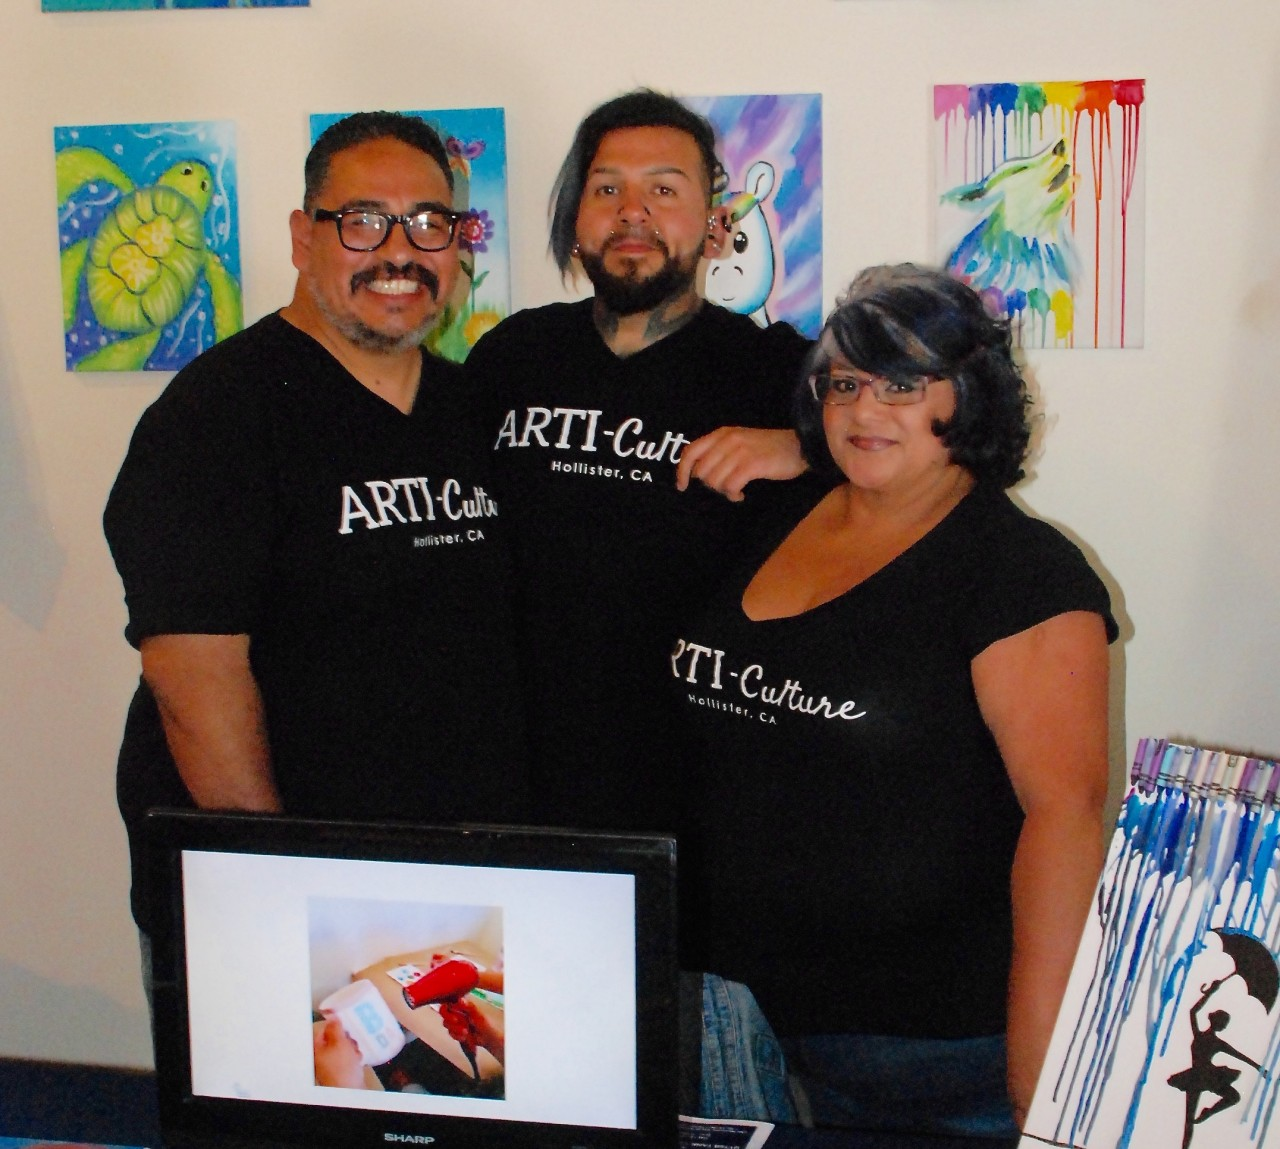 Joel Esqueda, center, founder of ARTI-Culture, with Rolan Resendiz and Lynda Reyna at the annual Startup Challenge Monterey Bay Saturday in Salinas. ARTI-Culture won a $2,500 runner-up prize. Photo by Tom Leyde.